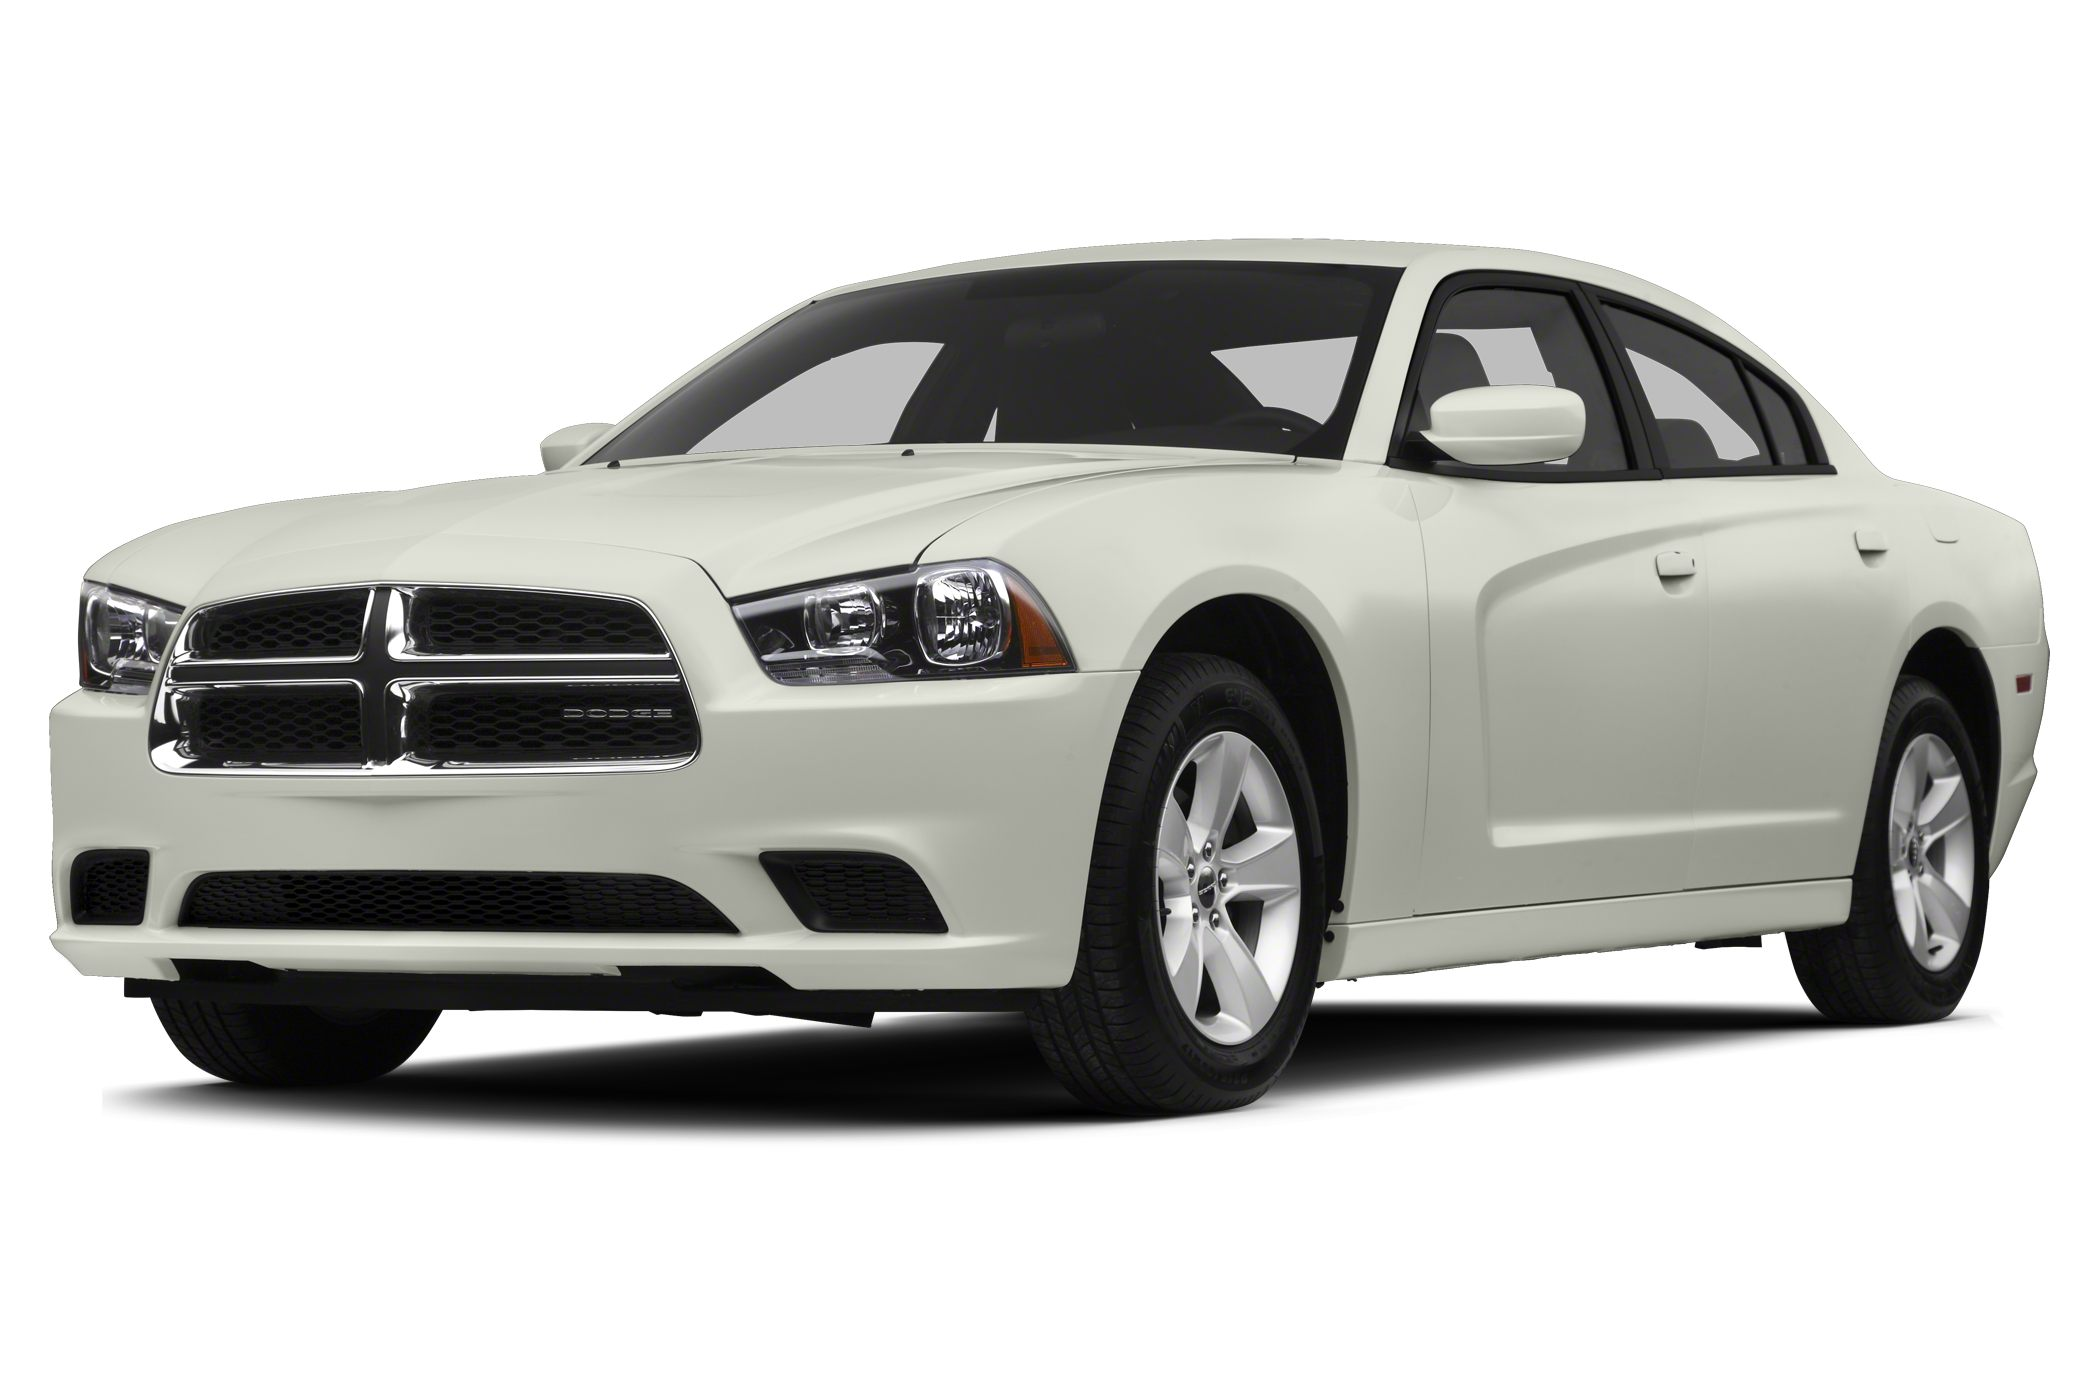 2013 Dodge Charger SE Sedan for sale in Statesville for $0 with 80,383 miles